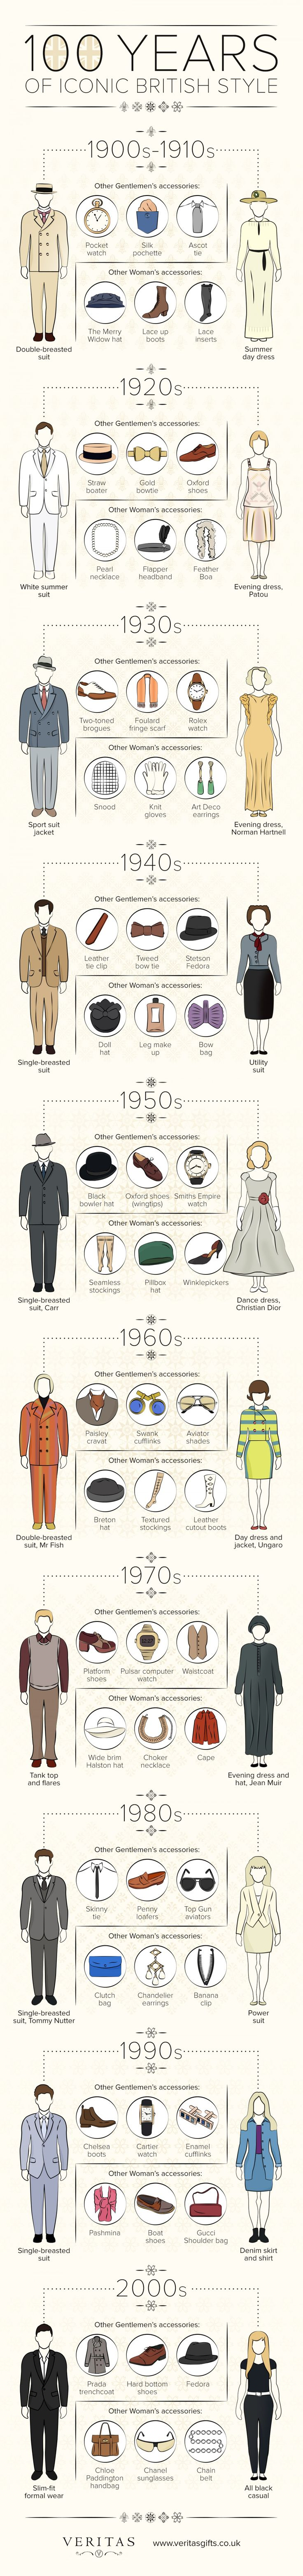 100 Years of Iconic British Style Infographic